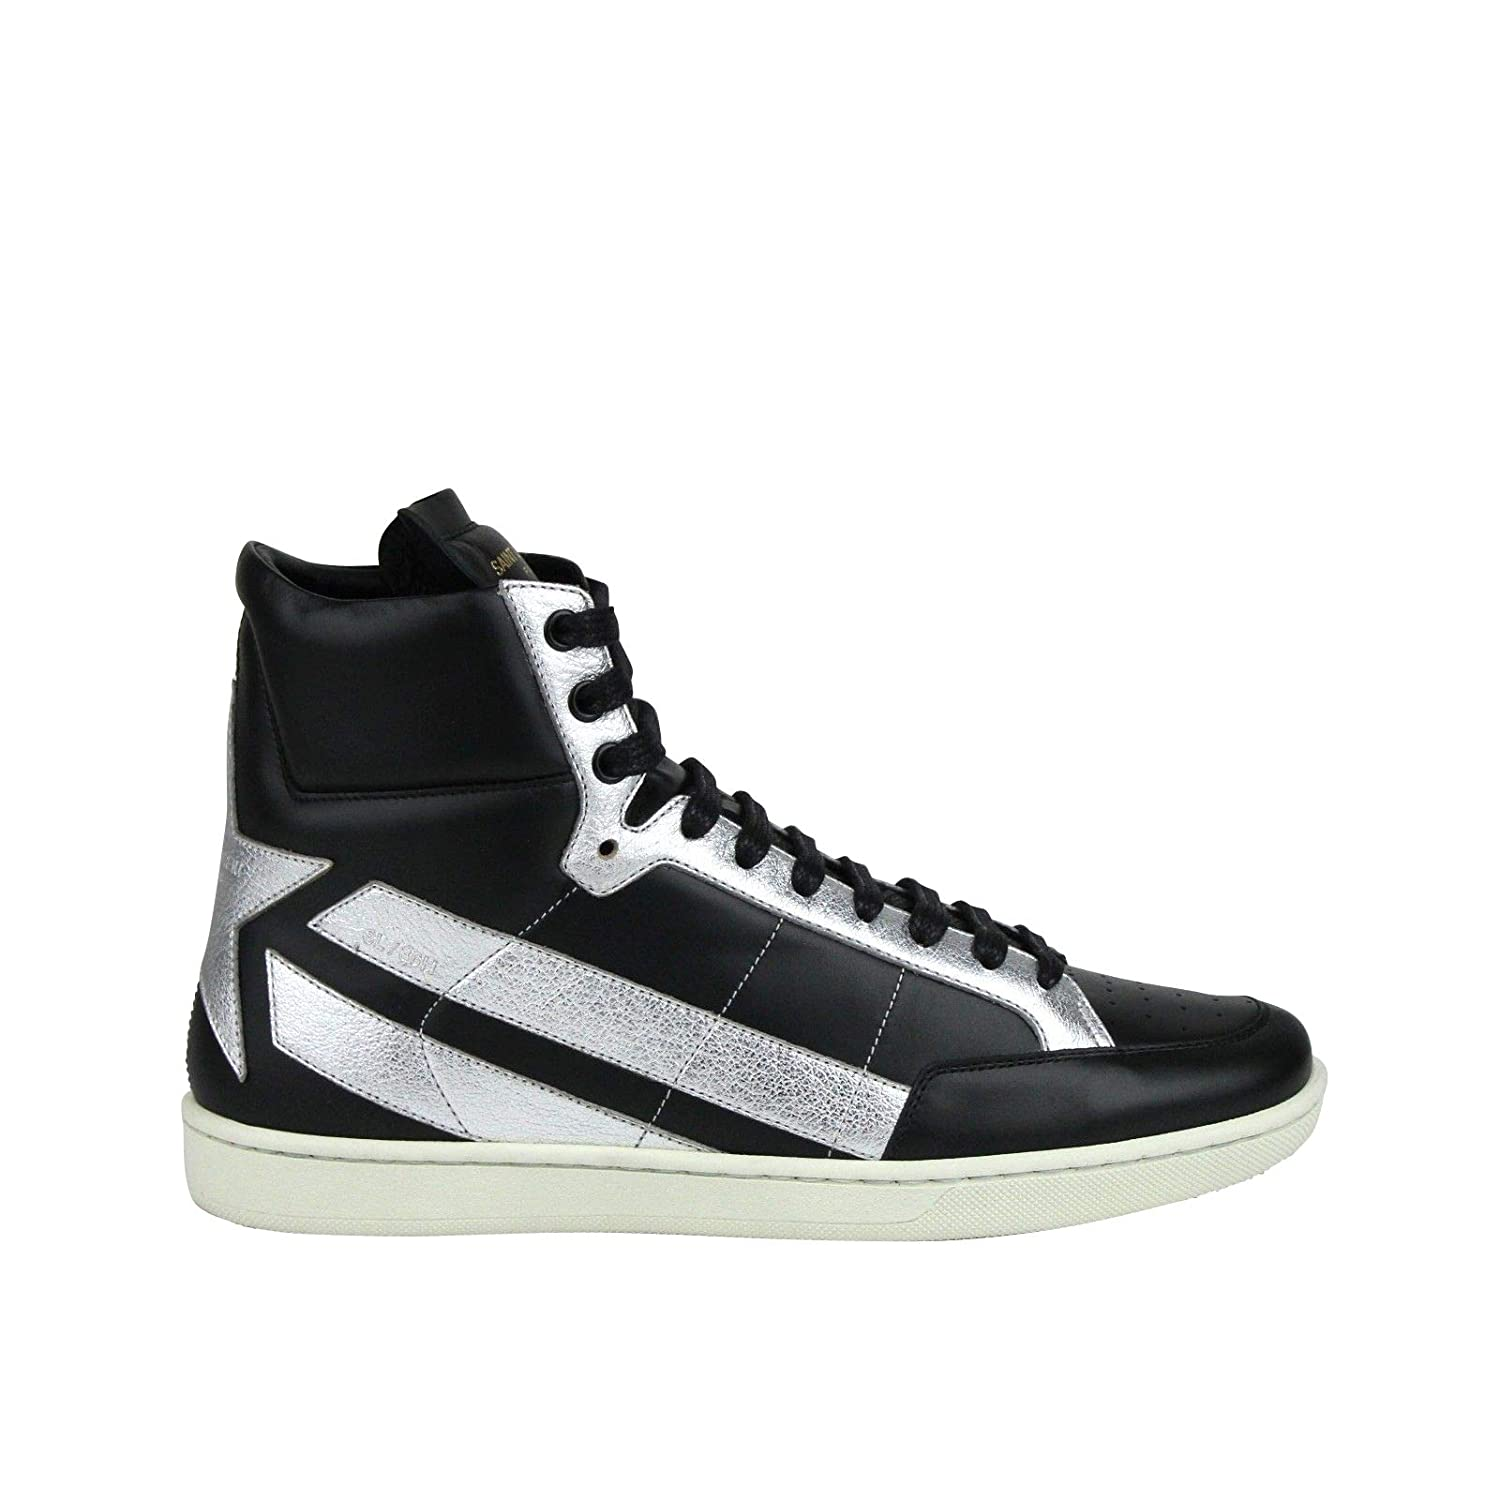 f67889e34bc Amazon.com | YSL Saint Laurent Hi Top Black/Silver Leather Sneakers 418044  1054 | Fashion Sneakers